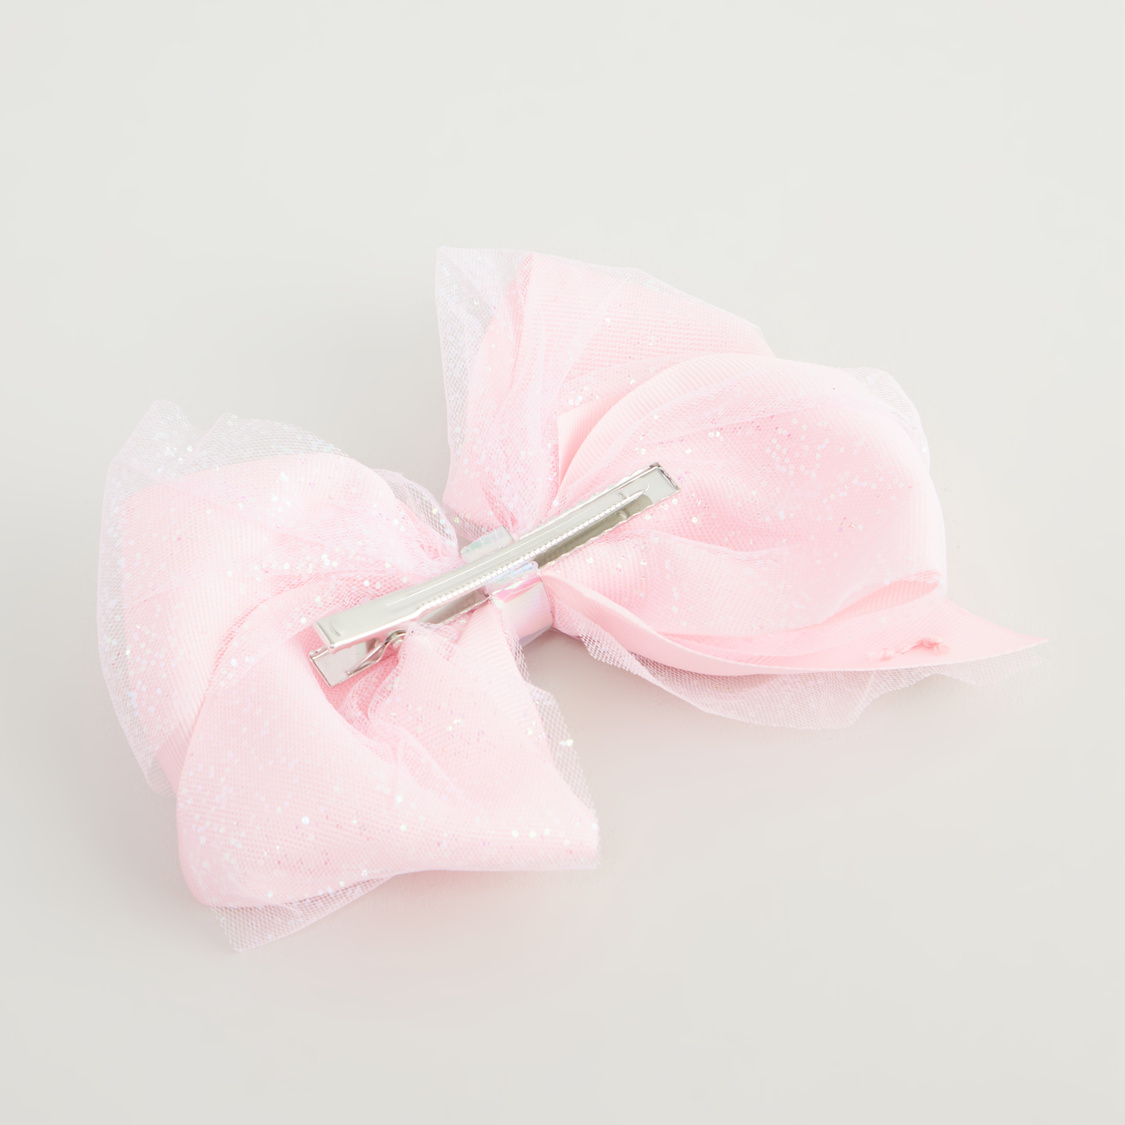 Textured Bow Detail Hairpin